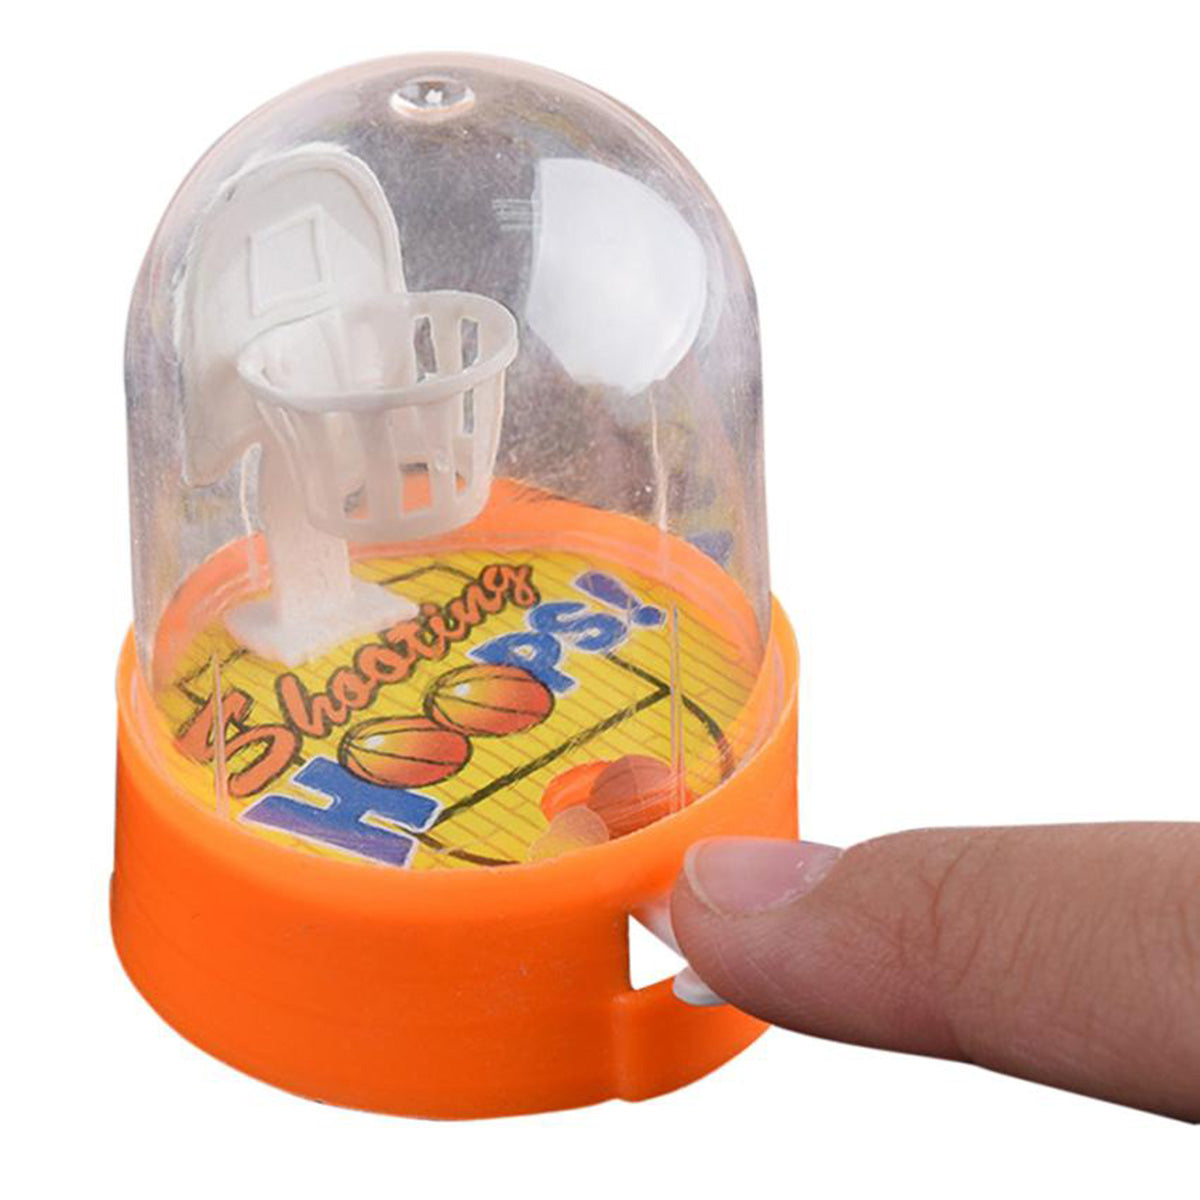 basketball shooting toy